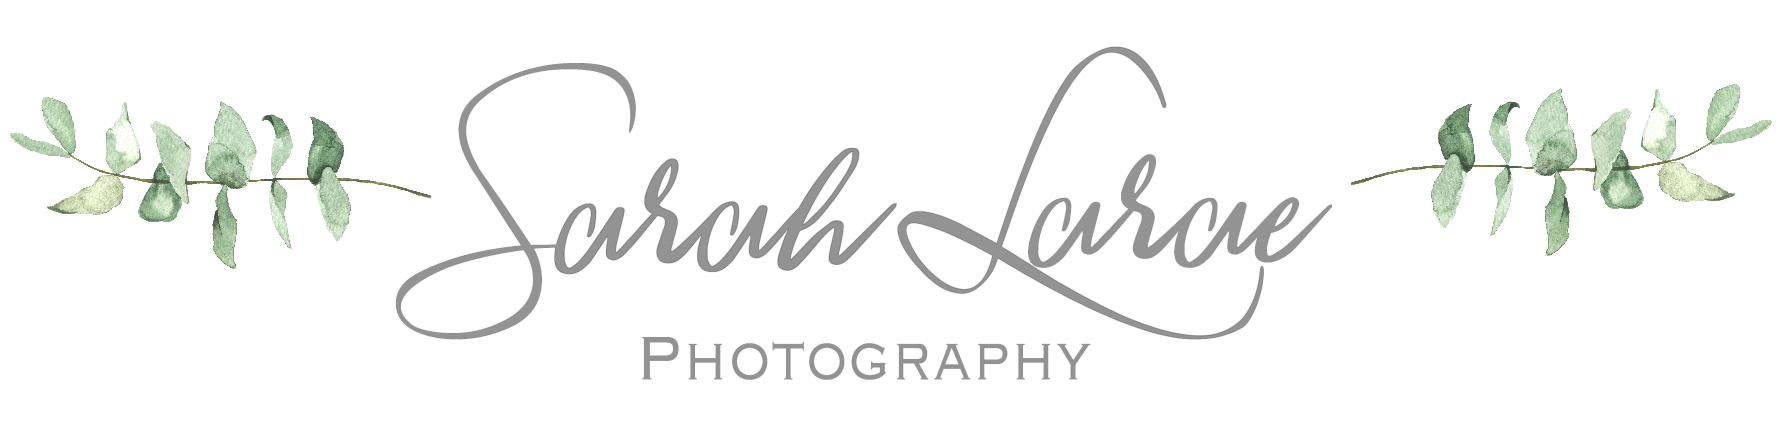 Chattanooga Photographer